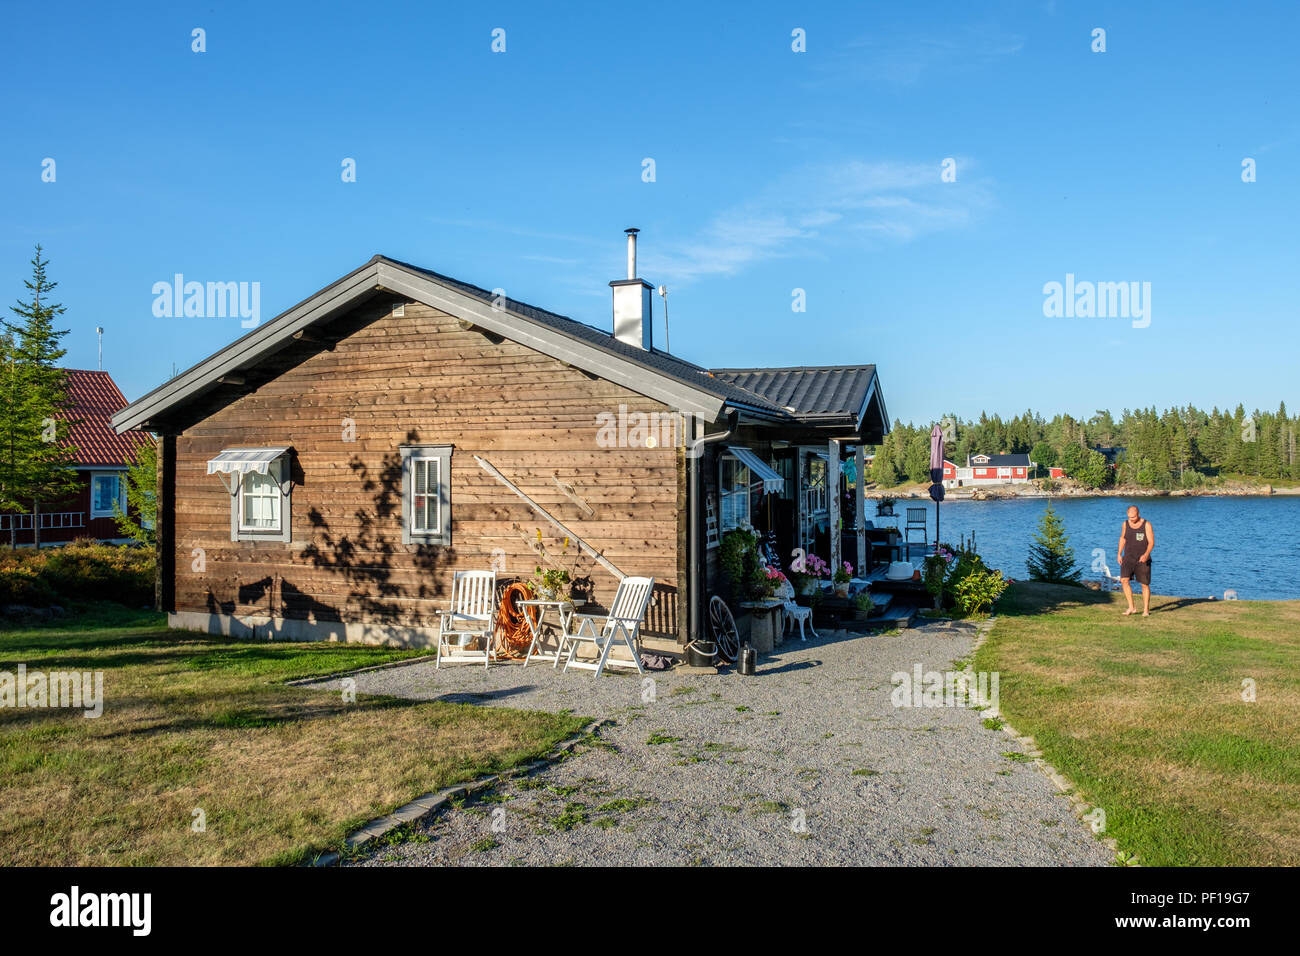 Summer day at Sundsviken outside Lovanger in northern Sweden. This is a popular area for summer cottages in county Vasterbotten. - Stock Image